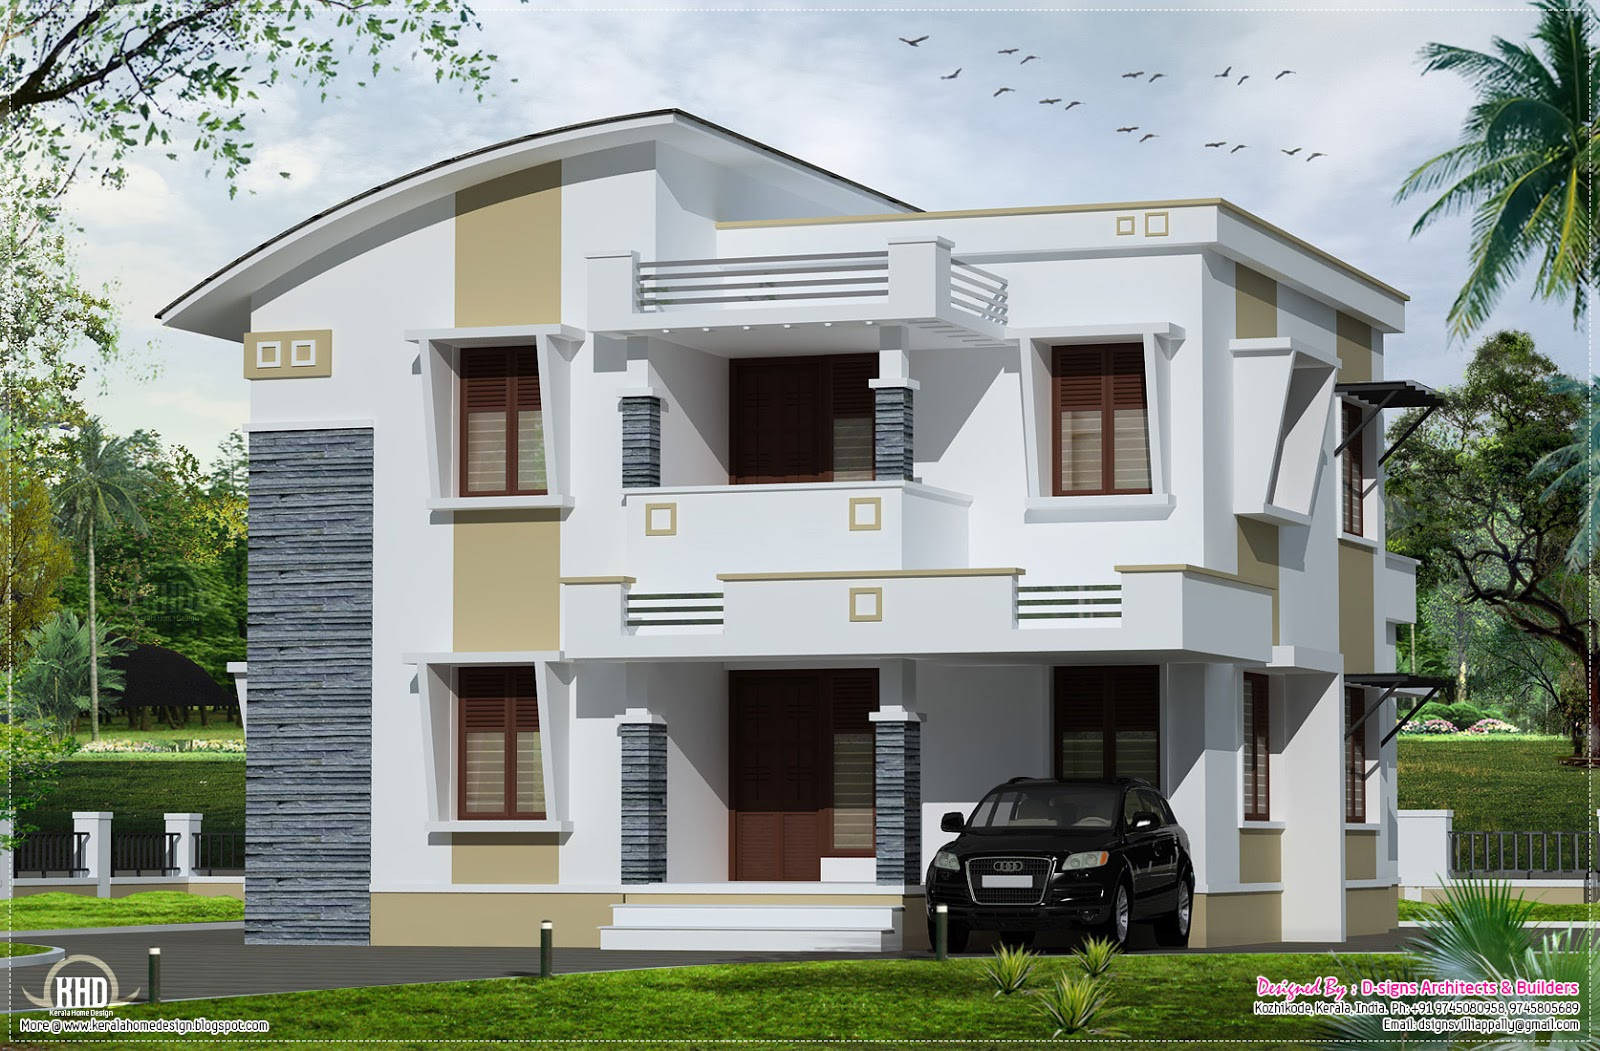 Simple flat roof home design in 1800 sq.feet - Kerala home ...